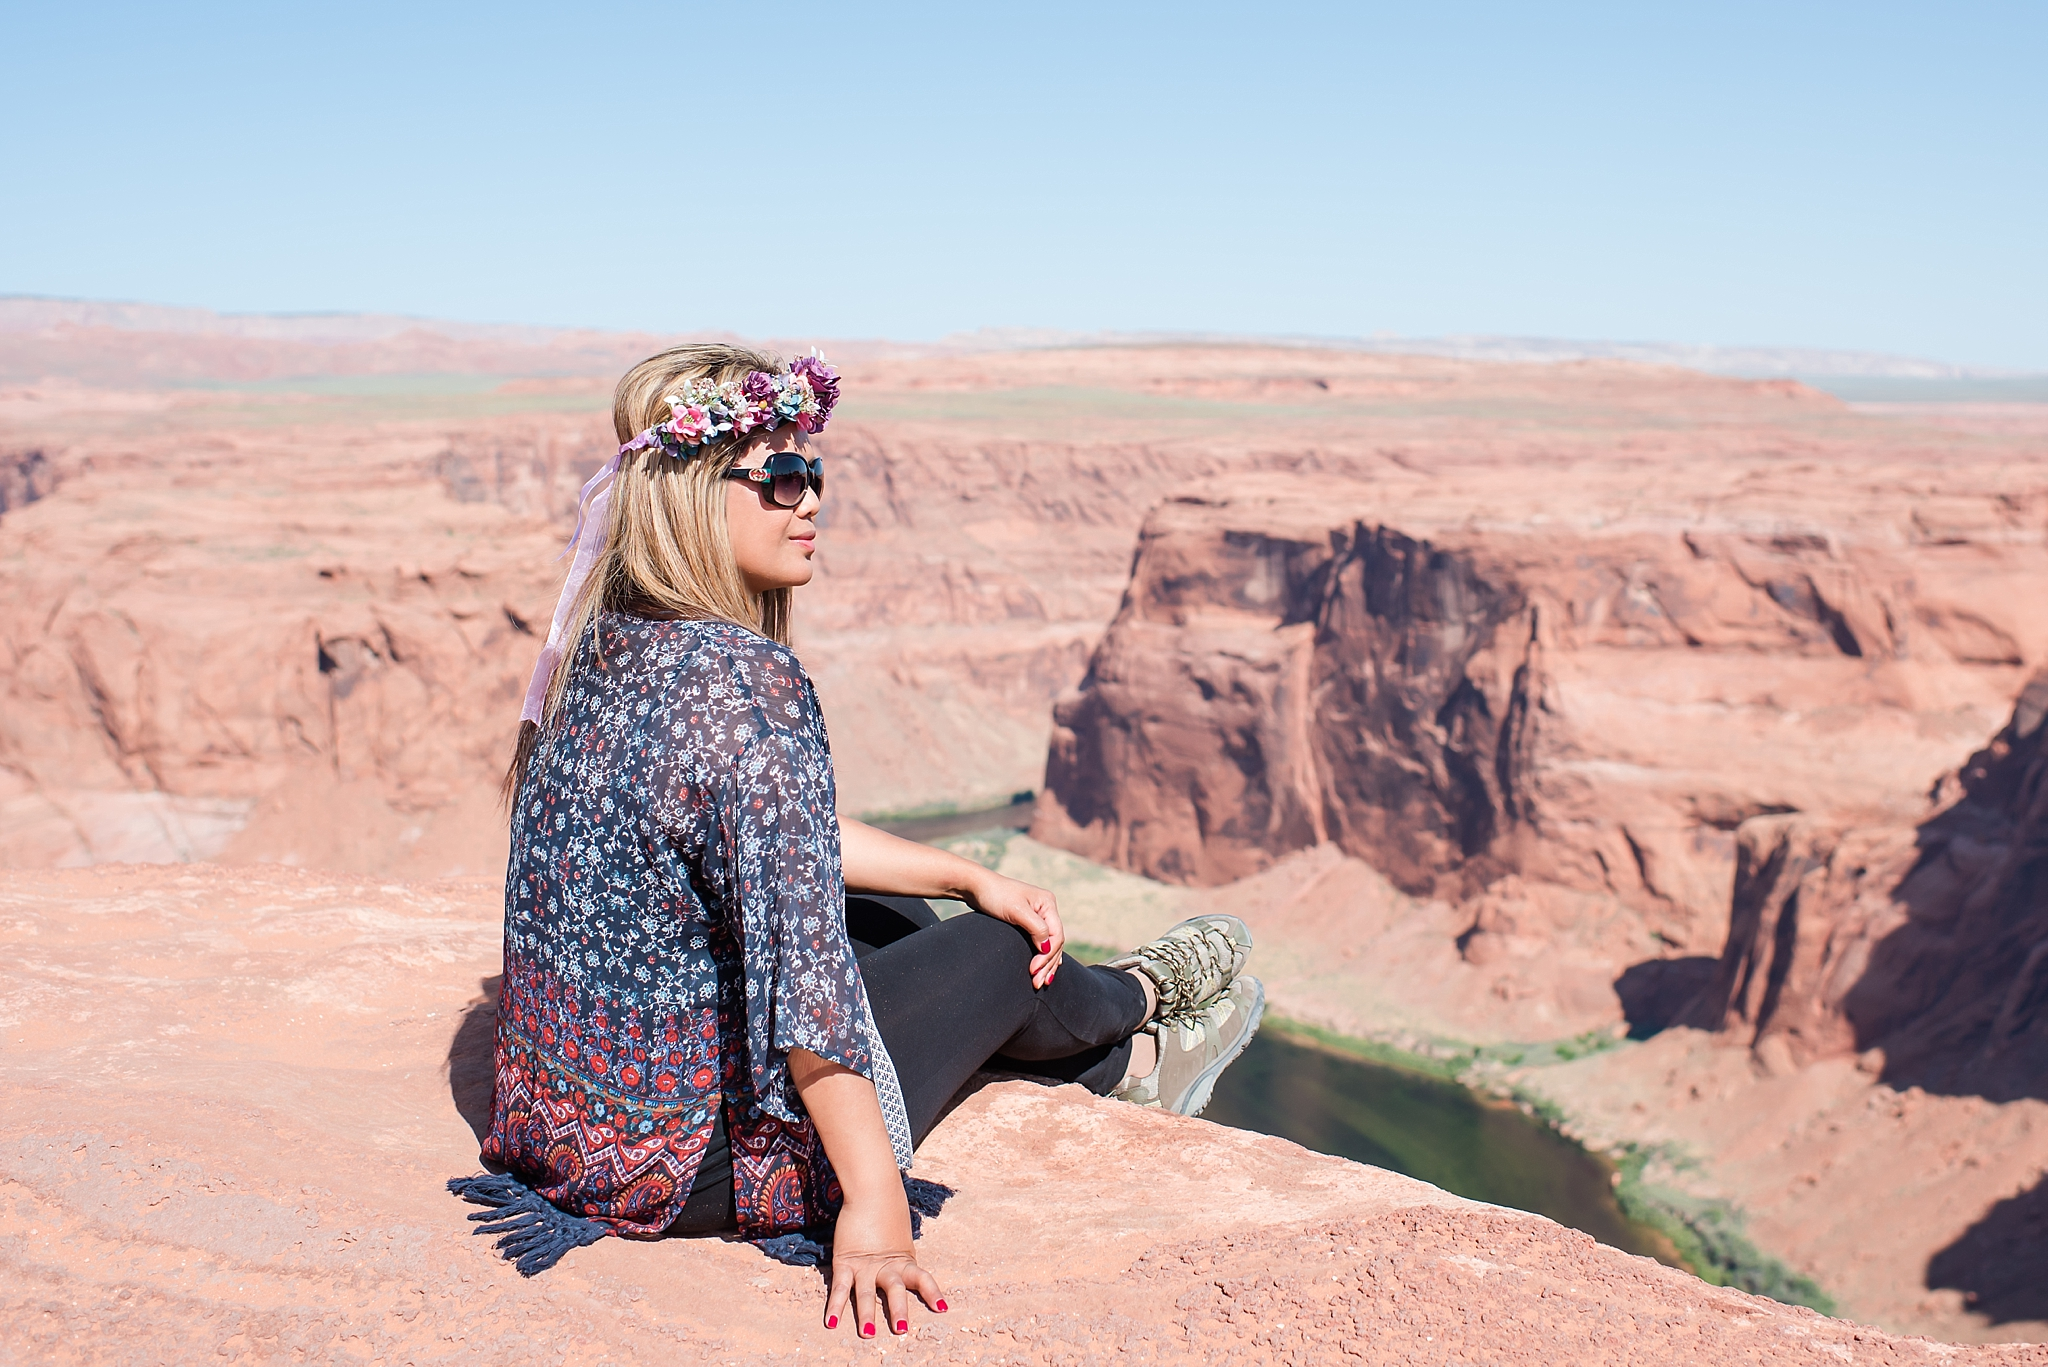 Jade trying not to fall off while sitting on the edge of the precipice at Horseshoe Bend during late morning near Page, Arizona. Travel photo by Jade Min Photography.